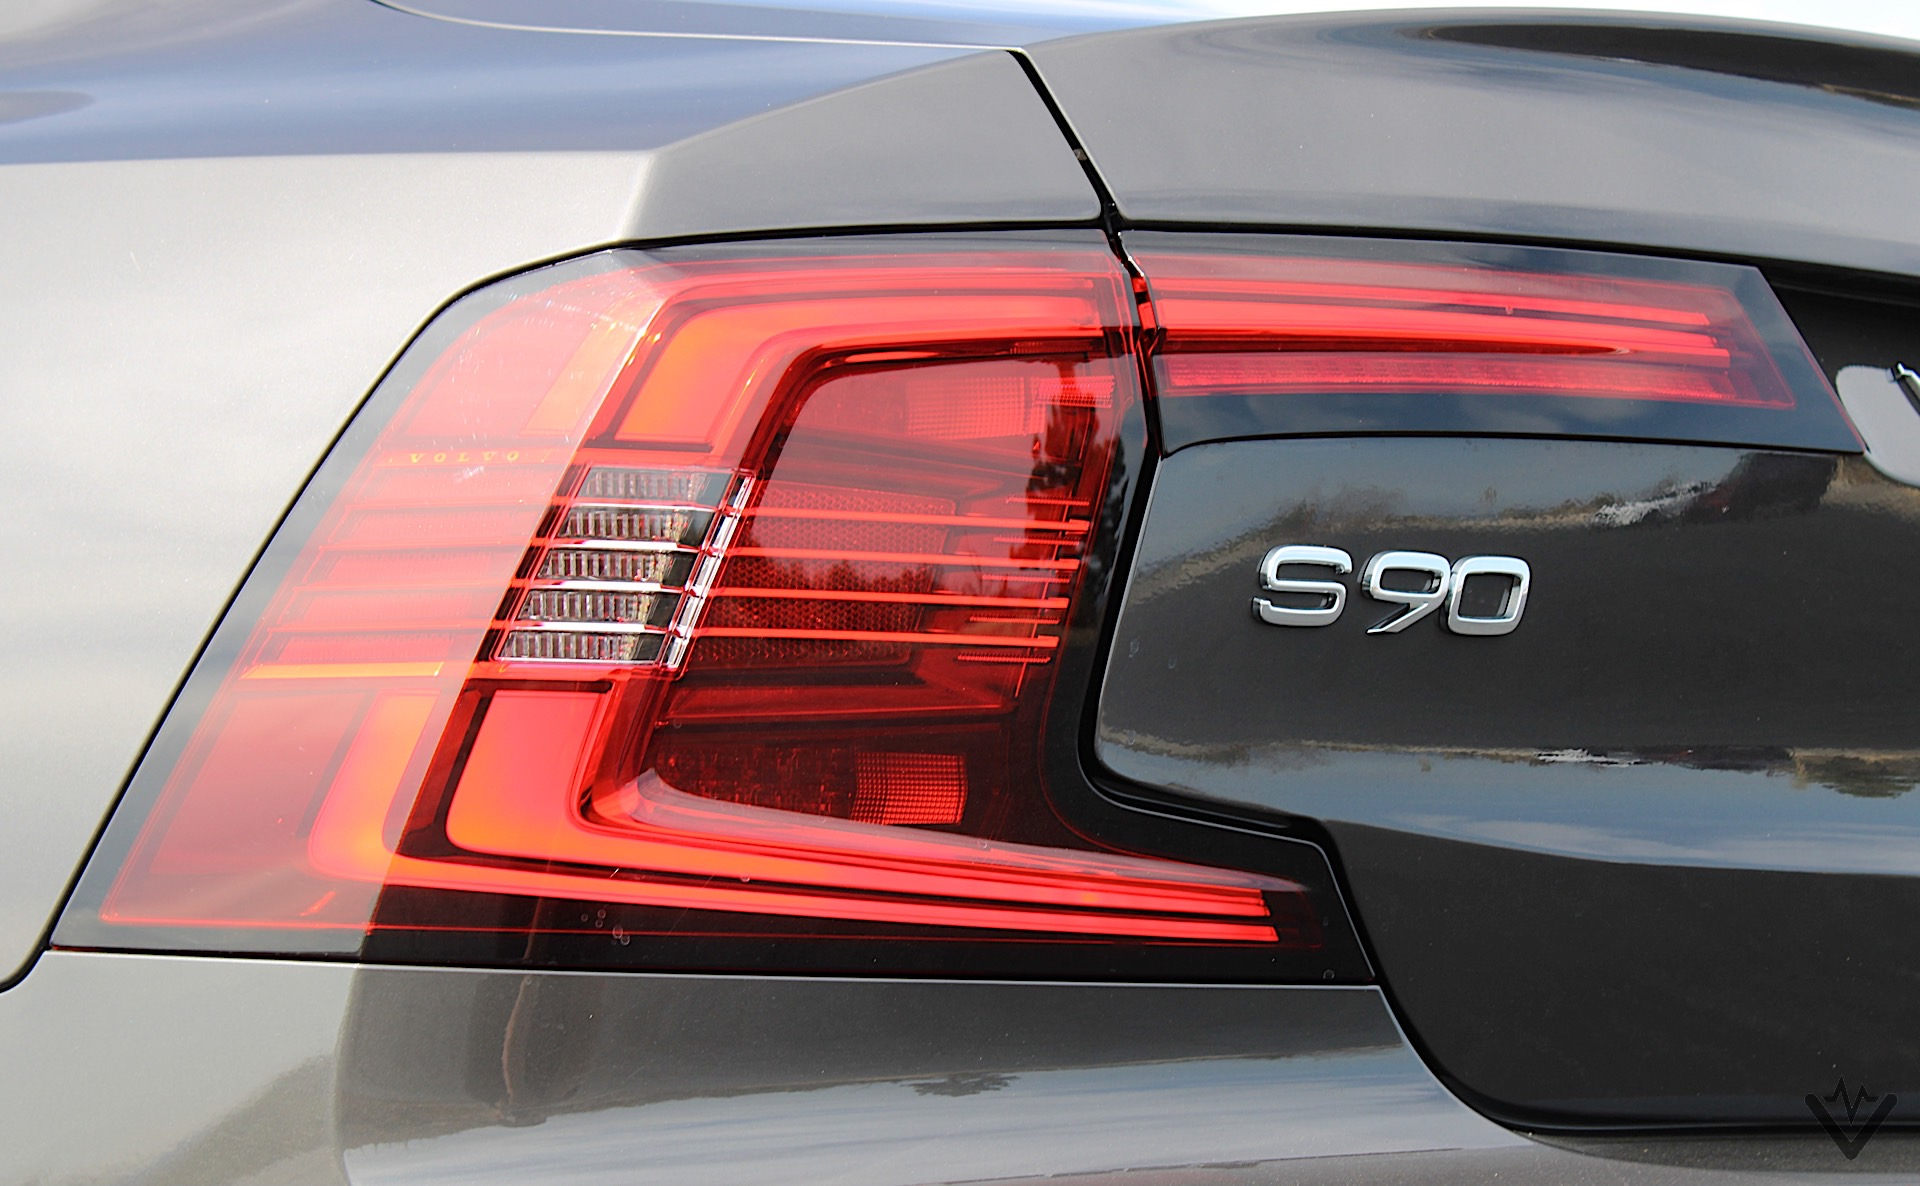 2021 Volvo S90 T8 Recharge taillight 02 1